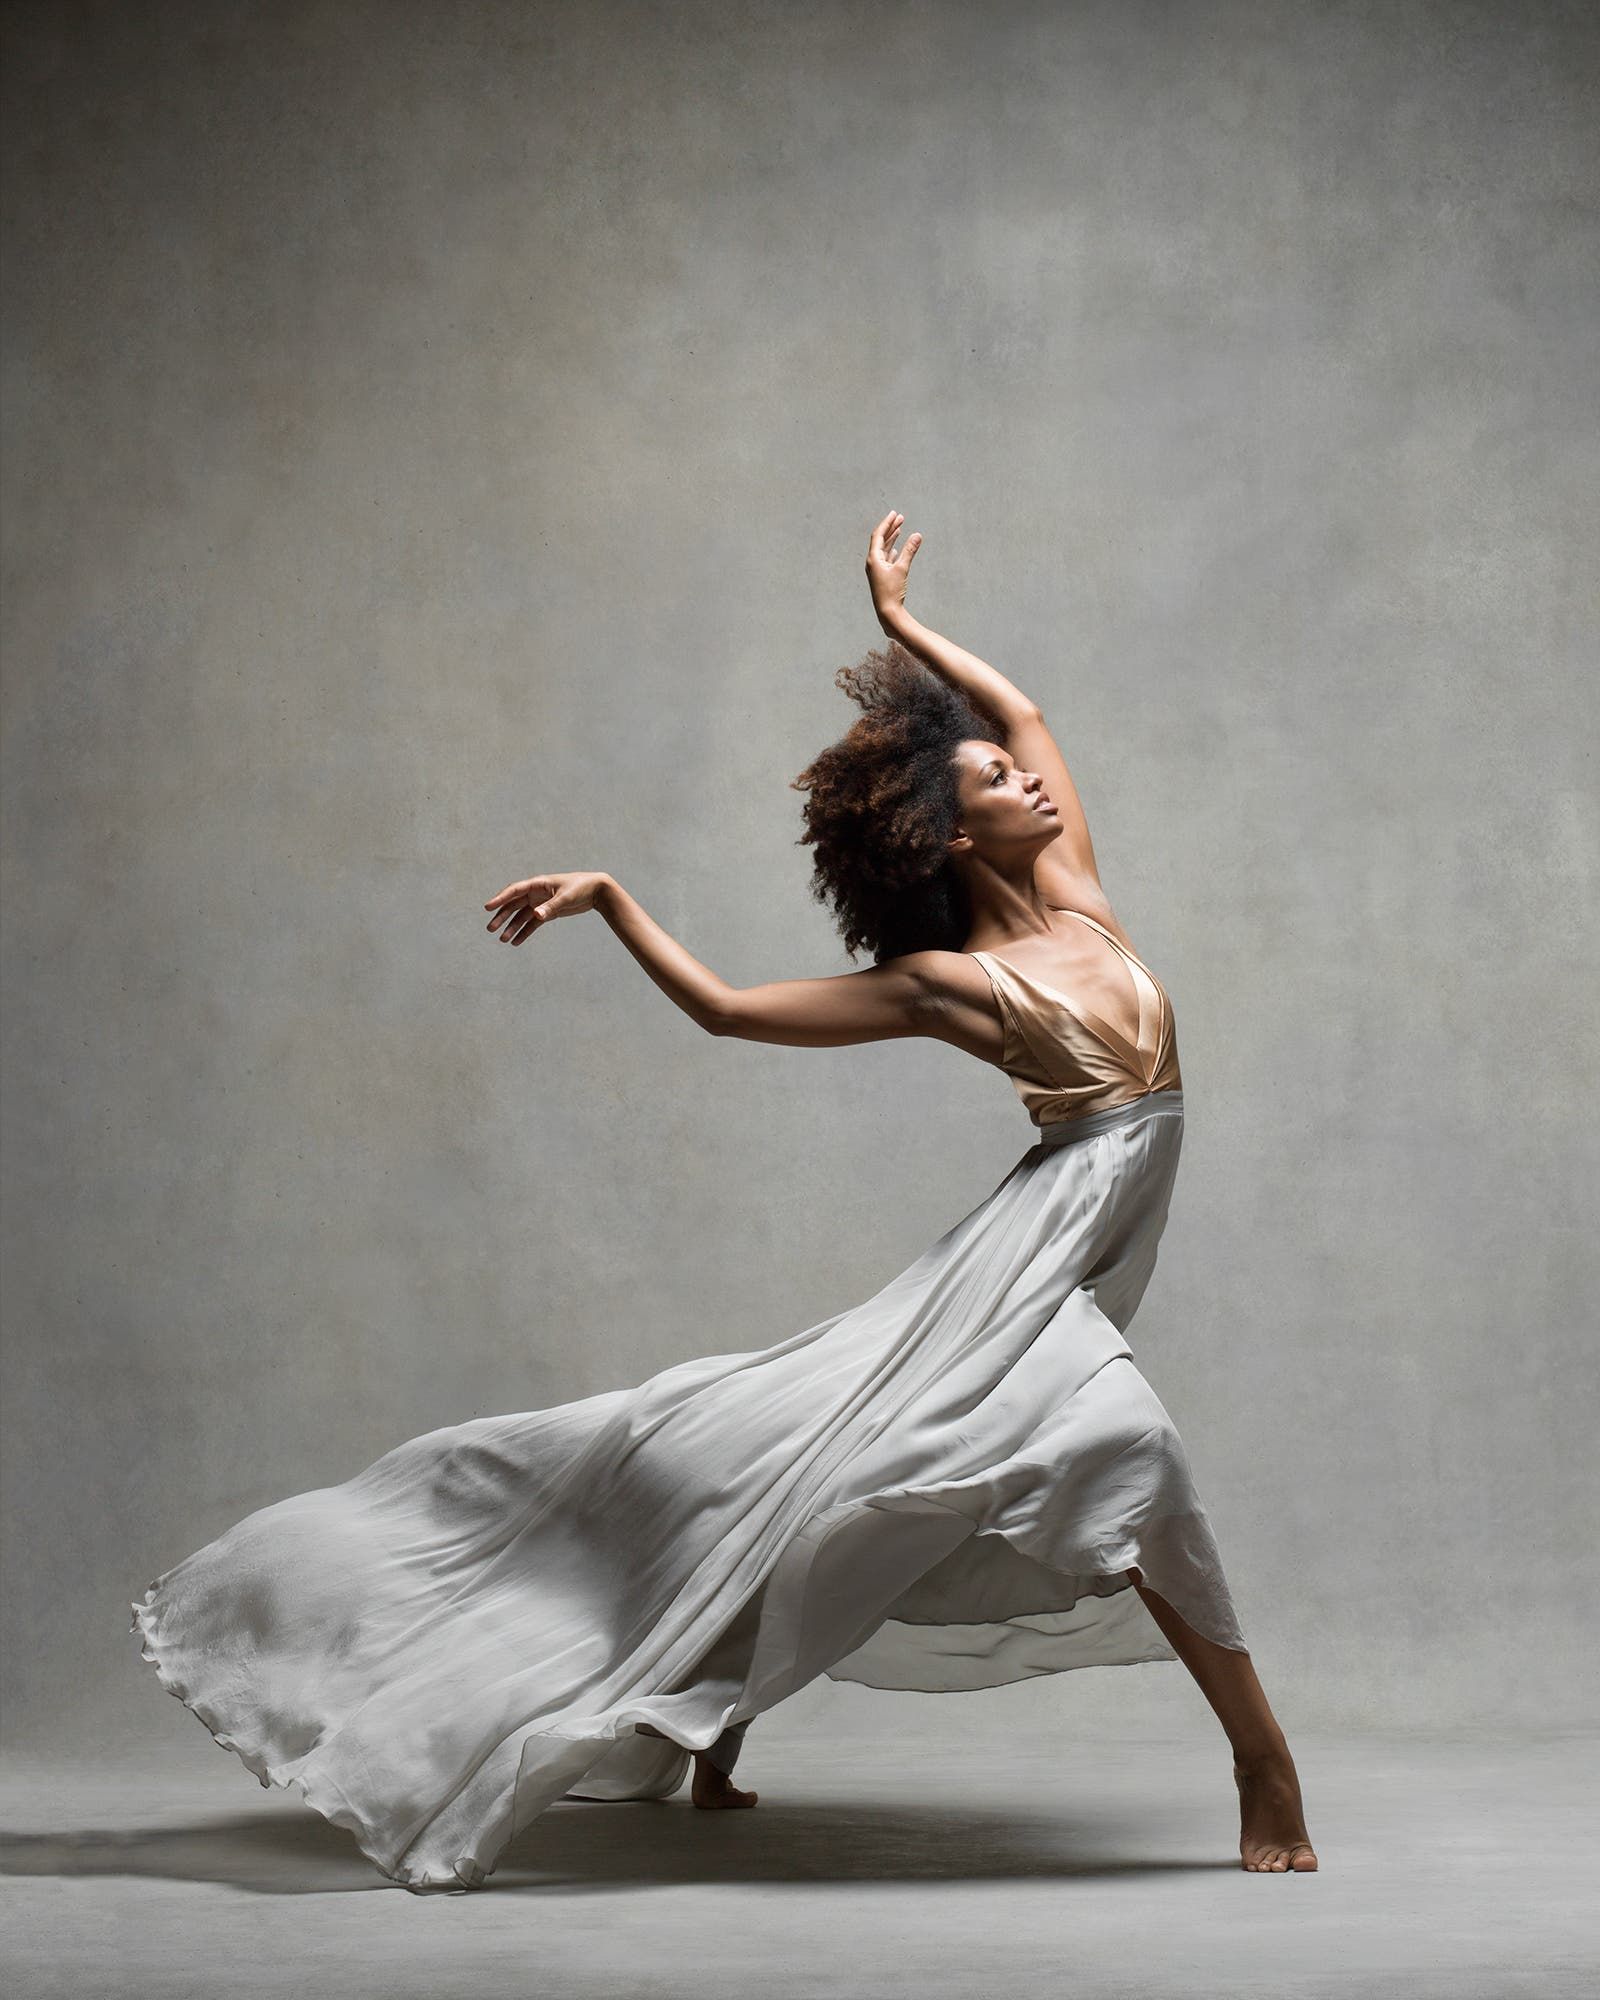 Collaborating with Dancers in the Studio as a Photographer